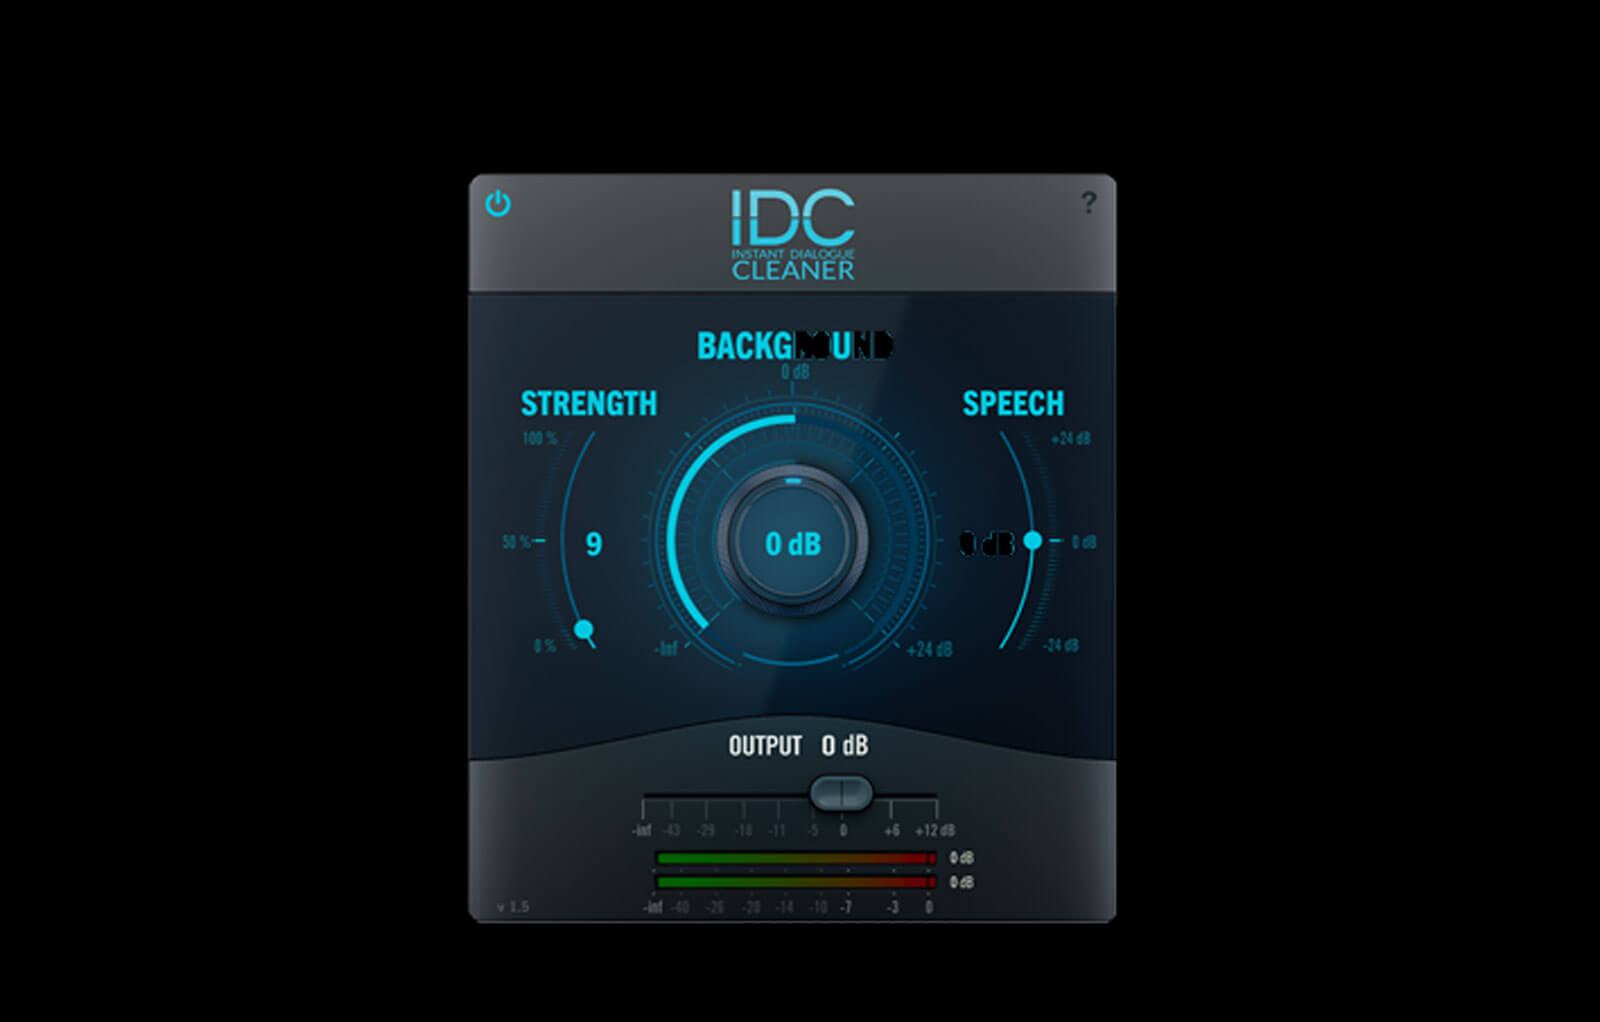 IDC: Instant Dialogue Cleaner